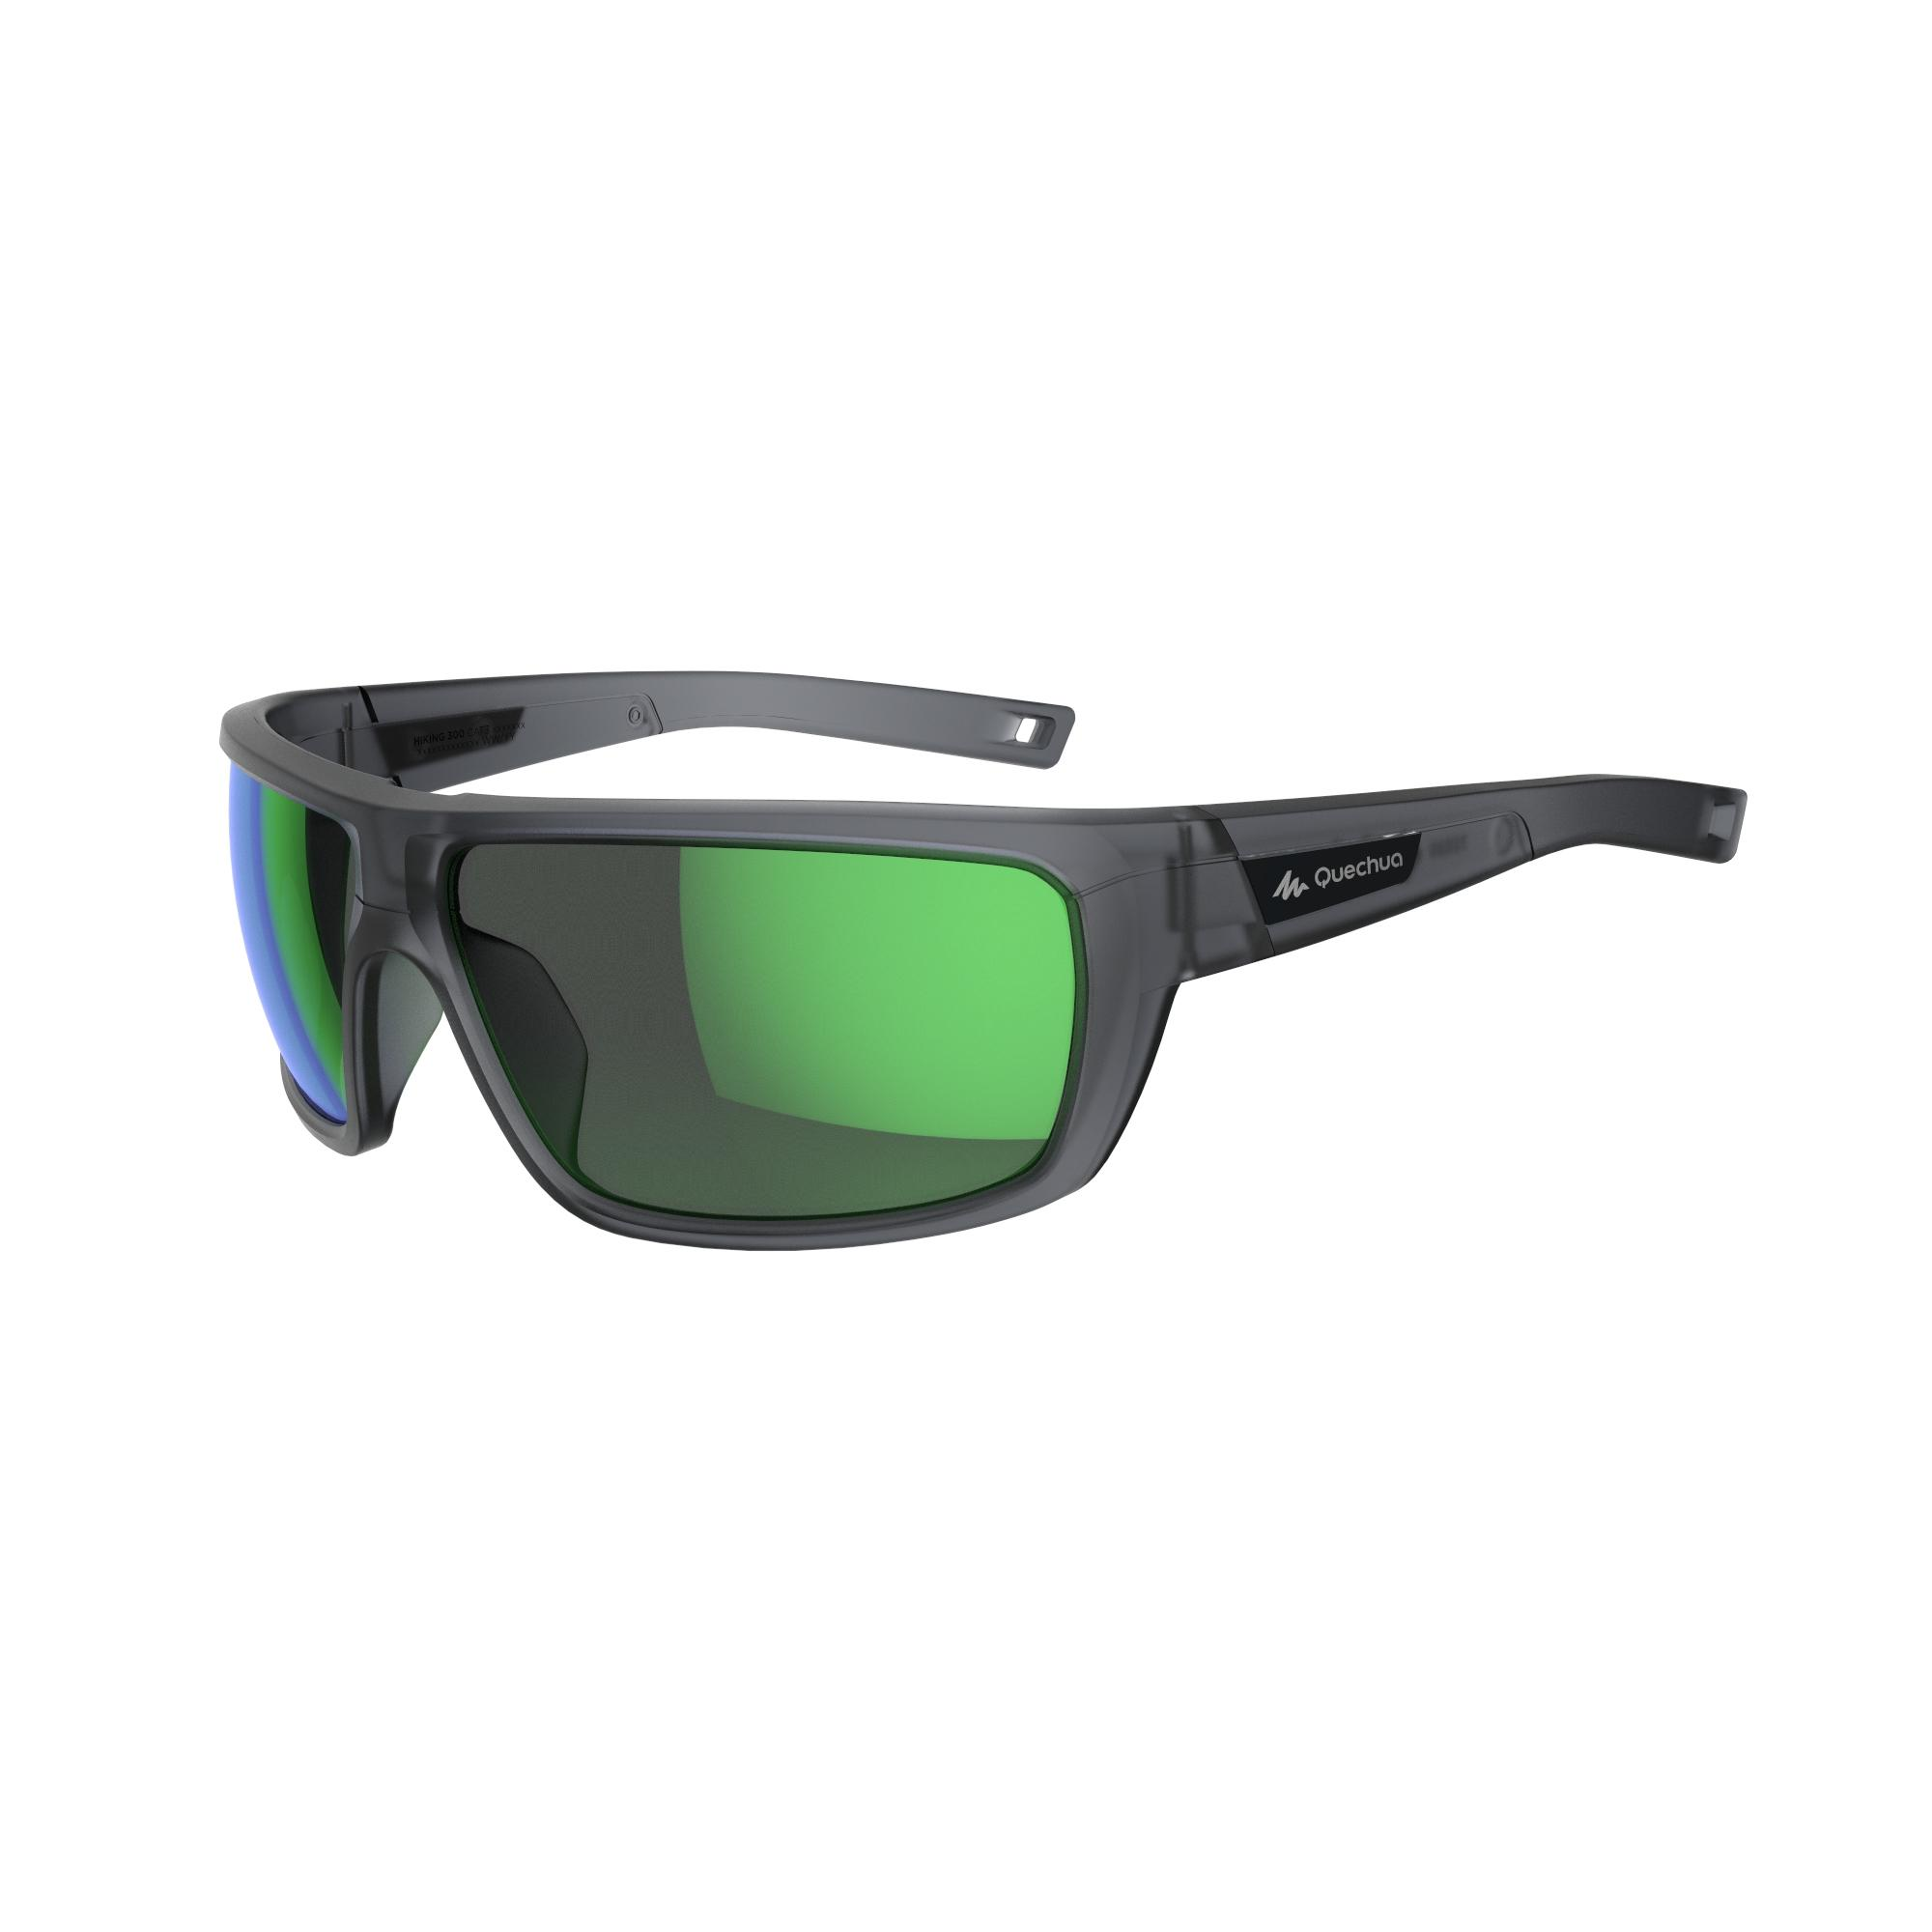 Hiking 300 Adult Category 3 Hiking Glasses - Grey & Green